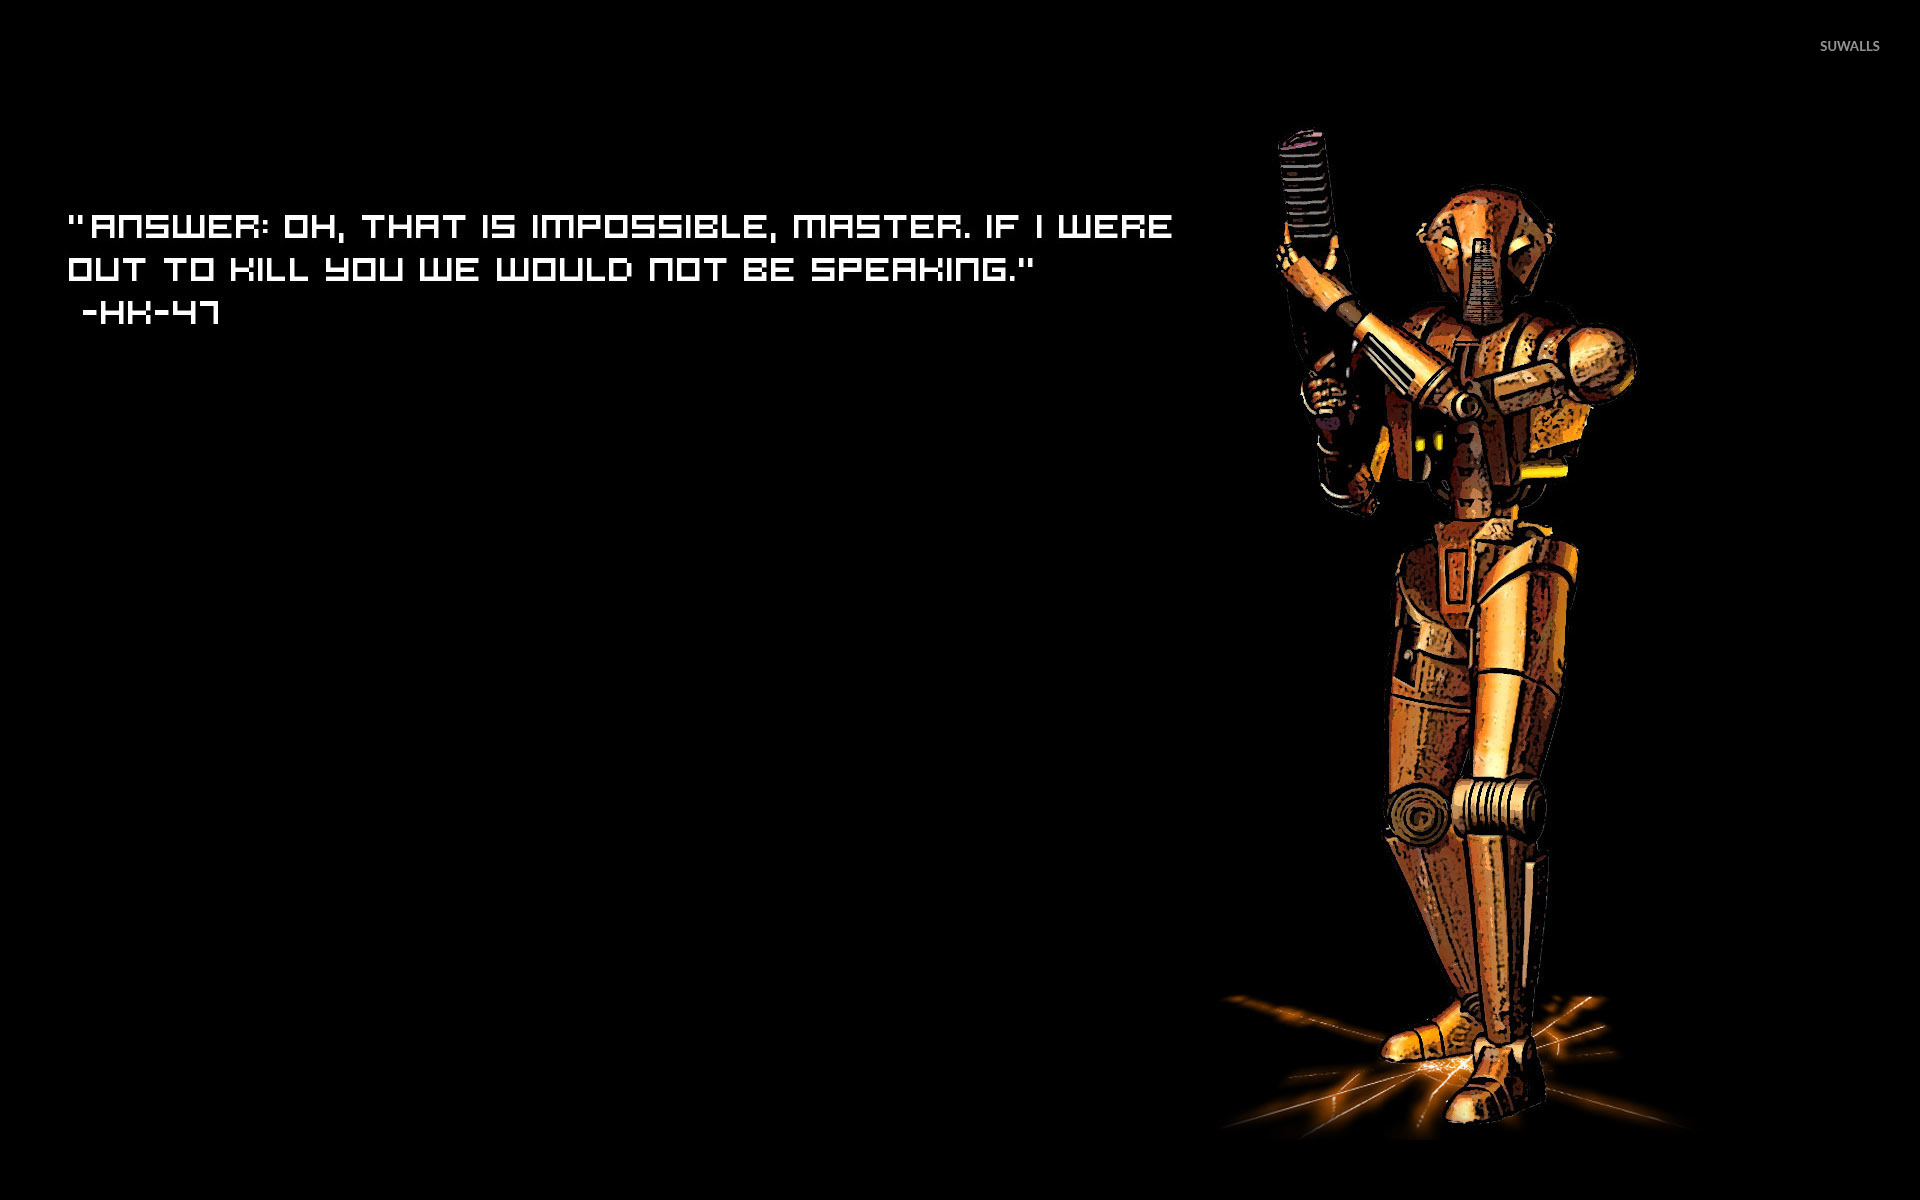 Star Wars Quote Wallpaper Quote Wallpapers 29280